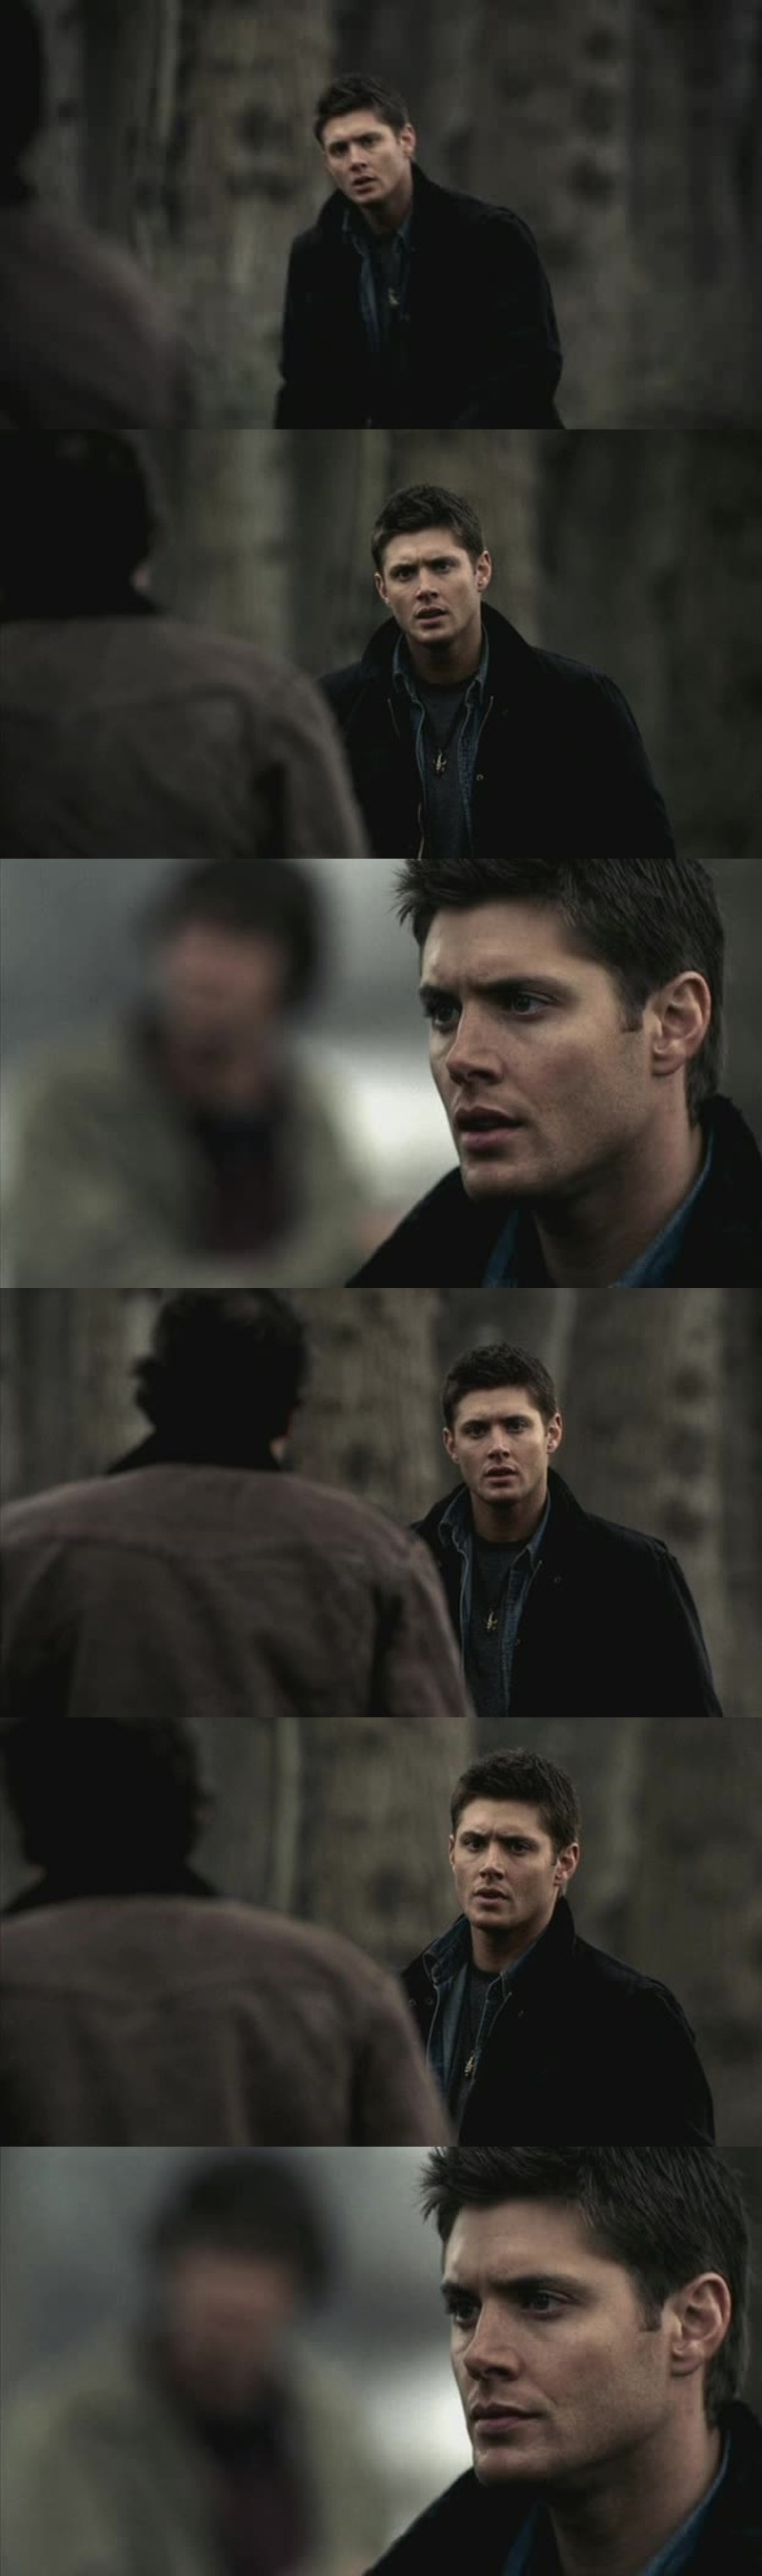 Dean Winchester is my new obsession